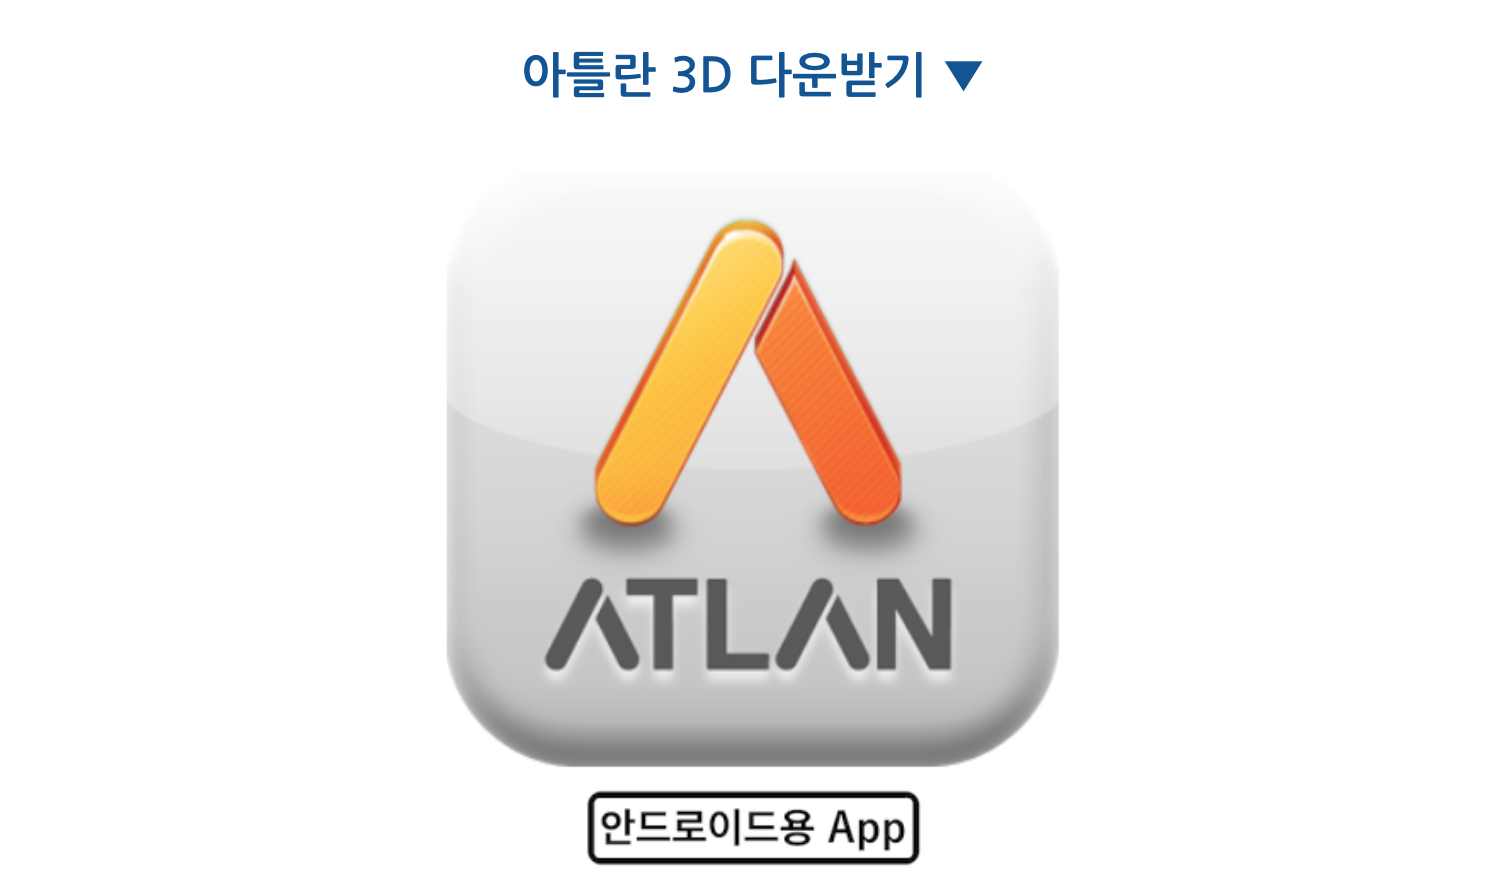 https://play.google.com/store/apps/details?id=kr.mappers.AtlanSmart